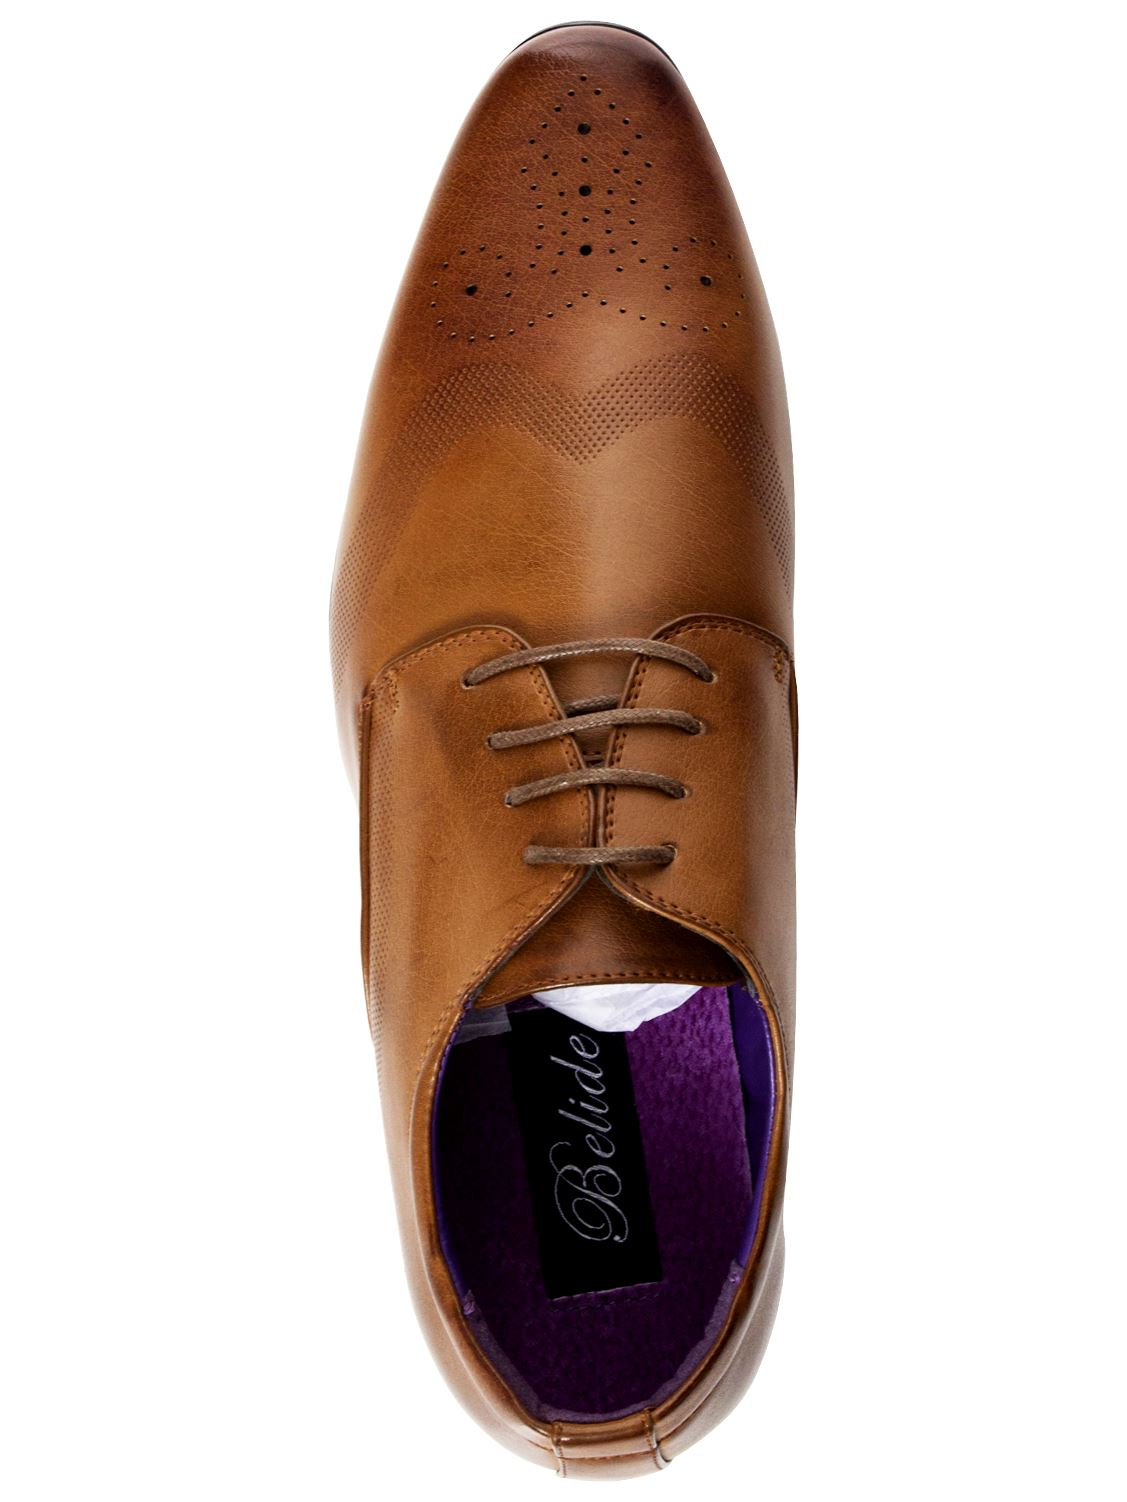 Mens-Faux-Leather-Shoes-Smart-Formal-Wedding-Office-Lace-Up-Designer-Brogues thumbnail 9